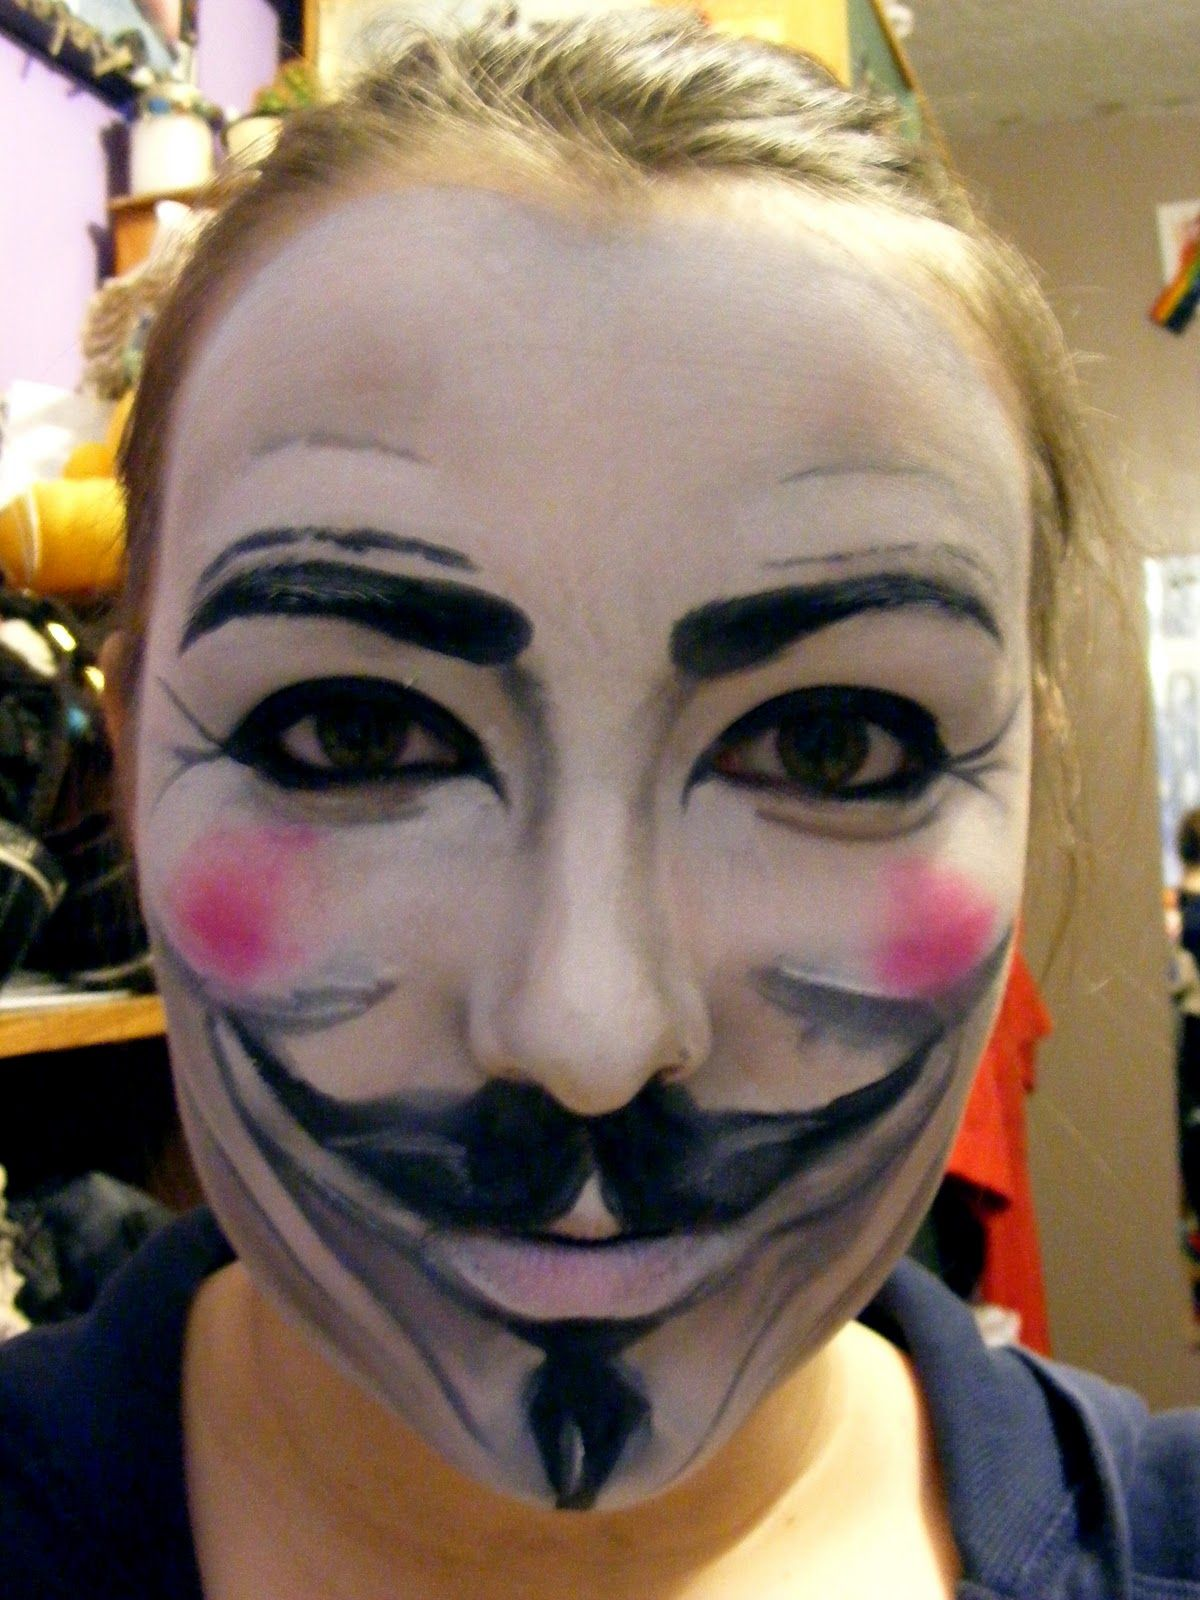 V For Vendetta Prom Face Painting Halloween Easy Halloween Face Painting Special Effects Makeup